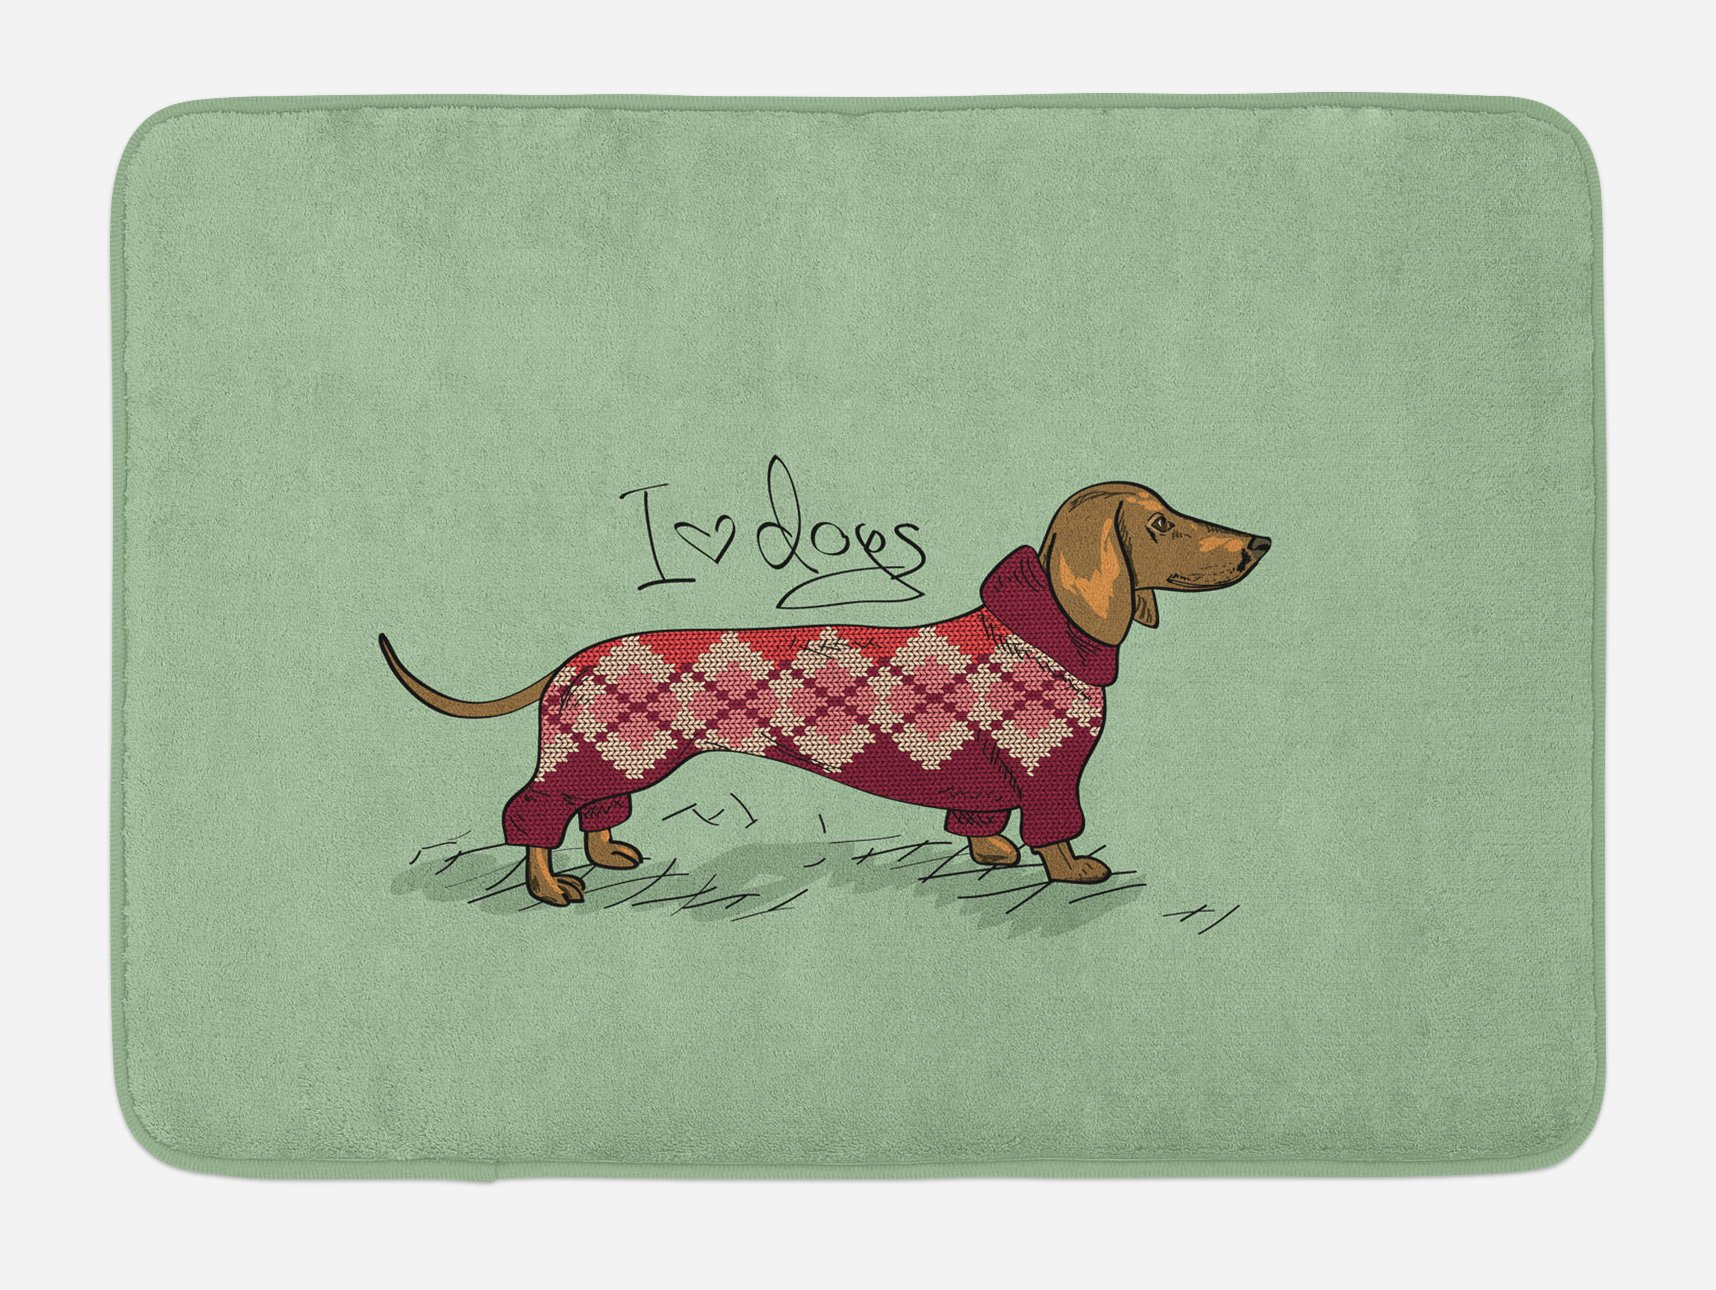 Ambesonne Dachshund Bath Mat, Cute Dog in Knitted Sweater Design Detailed Colorful Cartoon Style Animal Pattern, Plush Bathroom Decor Mat with Non Slip Backing, 29.5 W X 17.5 W Inches, Multicolor by Ambesonne (Image #1)